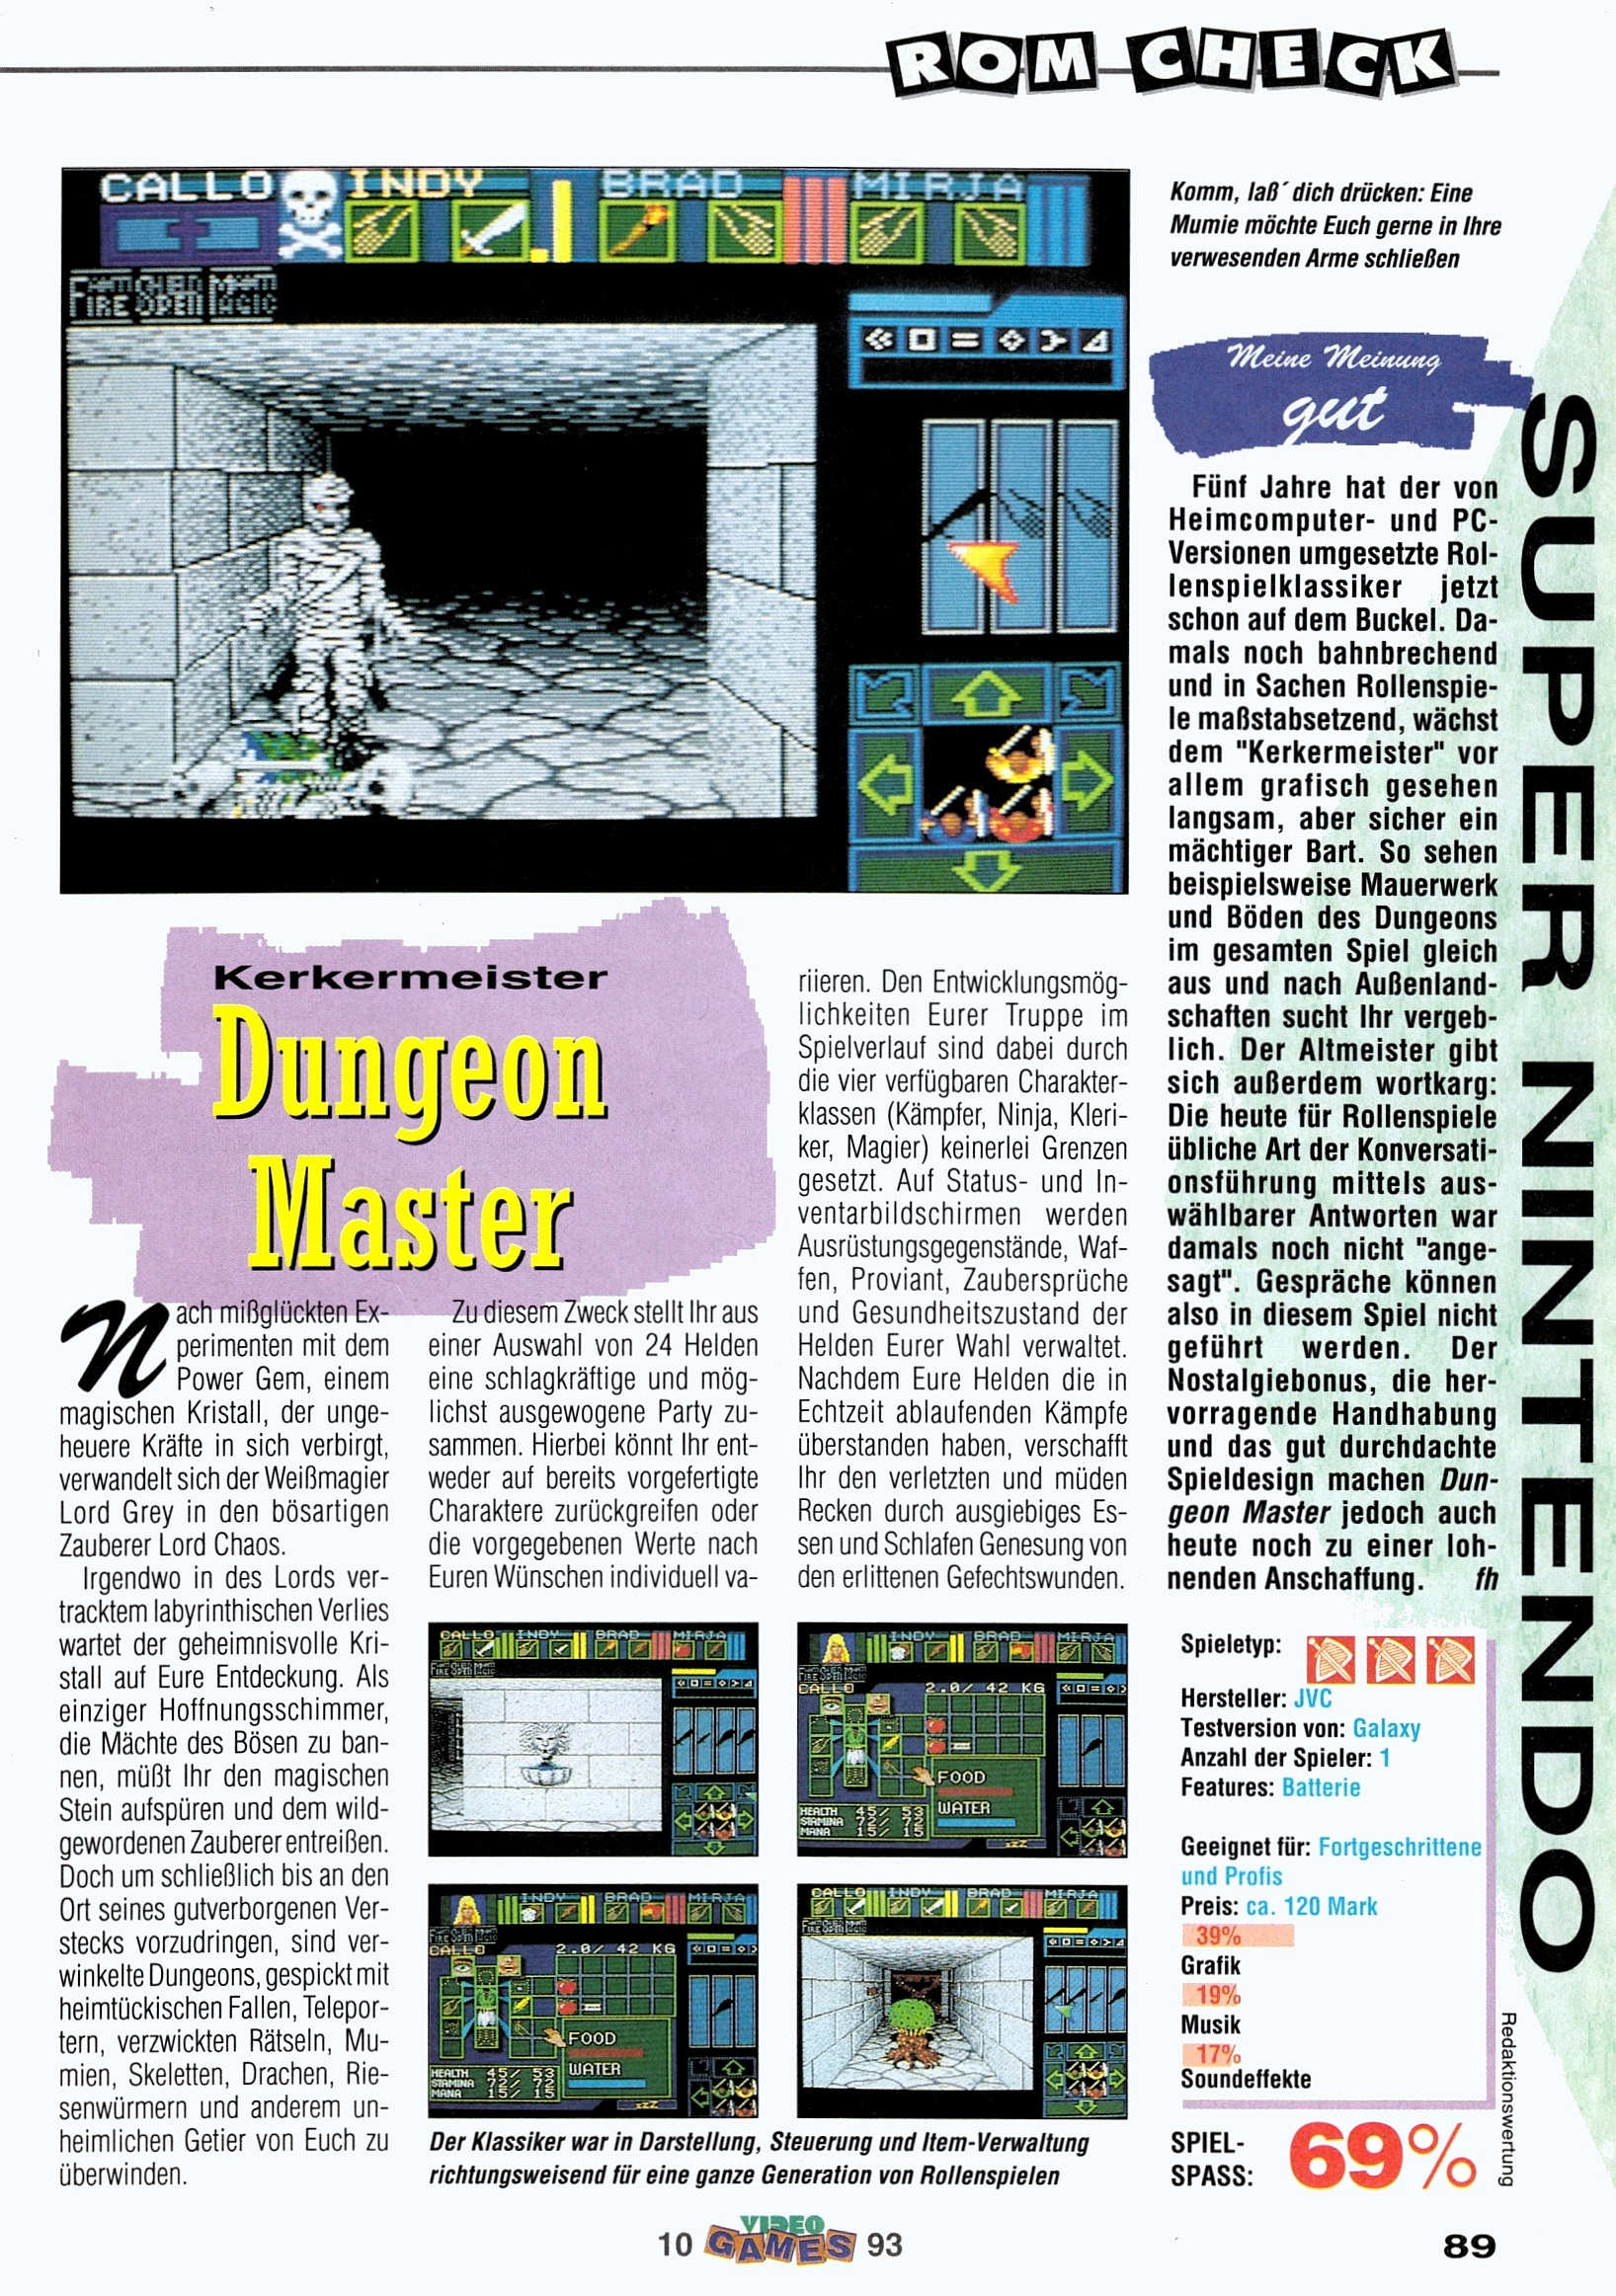 Dungeon Master for Super NES Review published in German magazine 'VideoGames', October 1993, Page 89